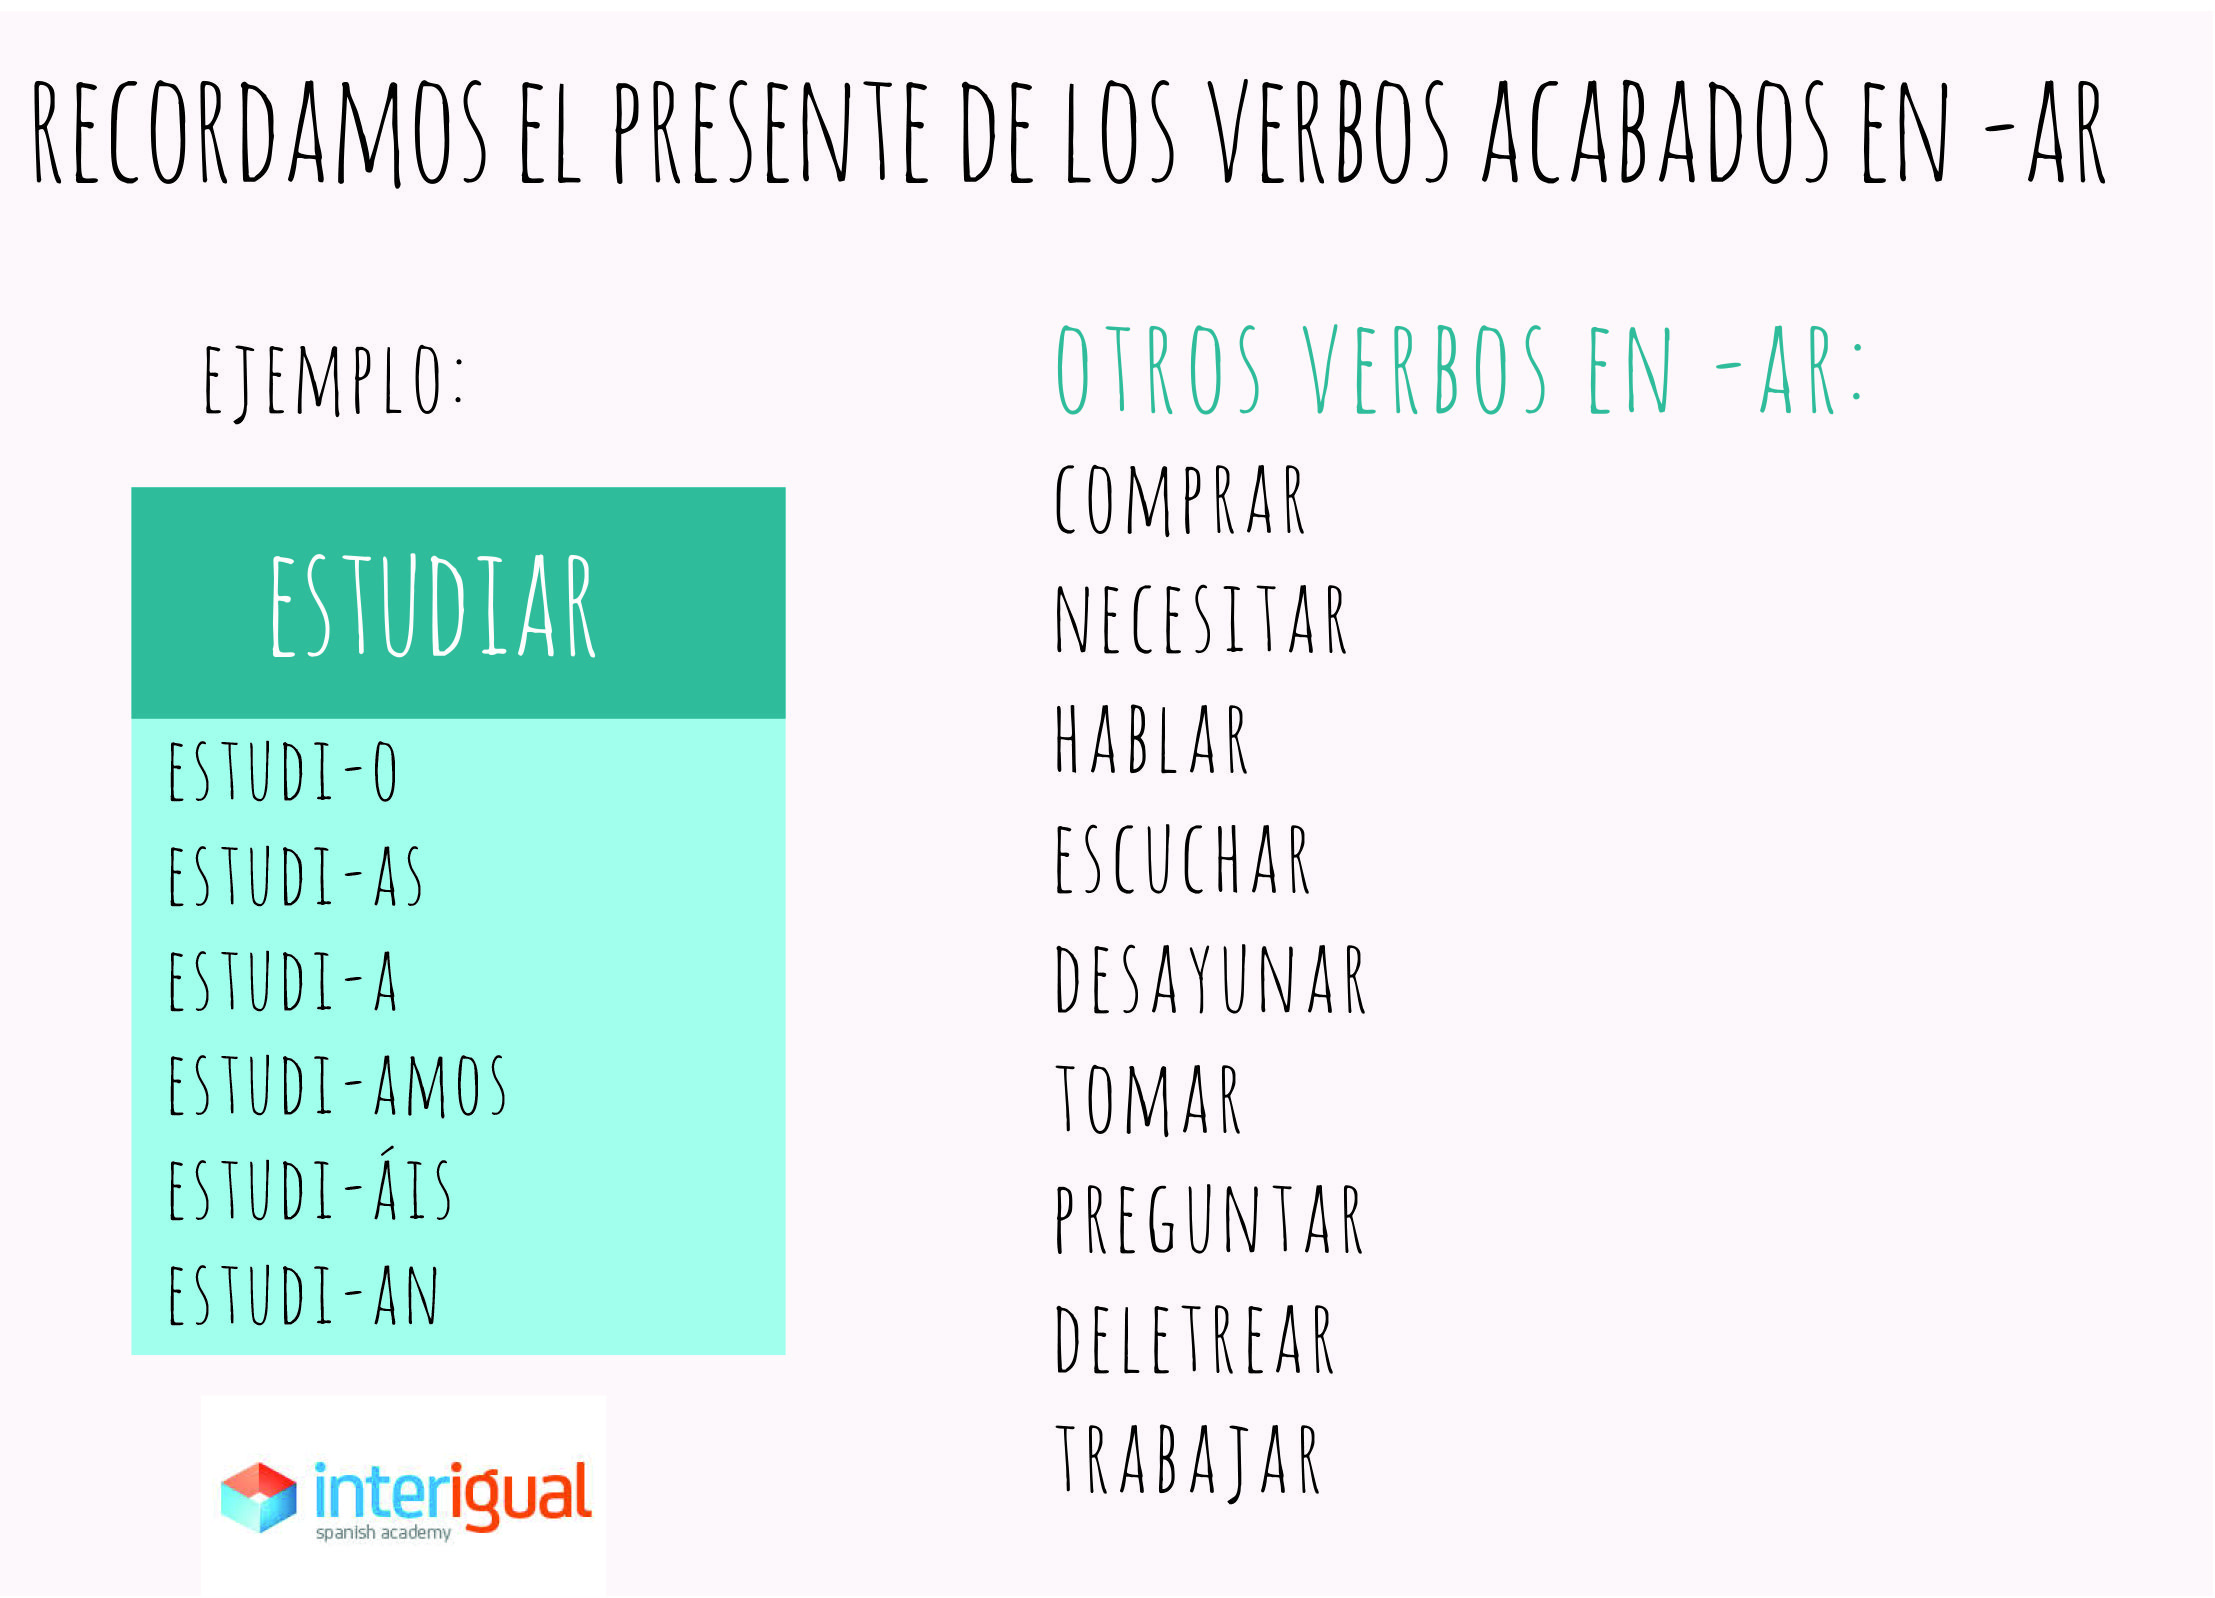 We Recall The Present Tense Of The Verbs Ending In Ar